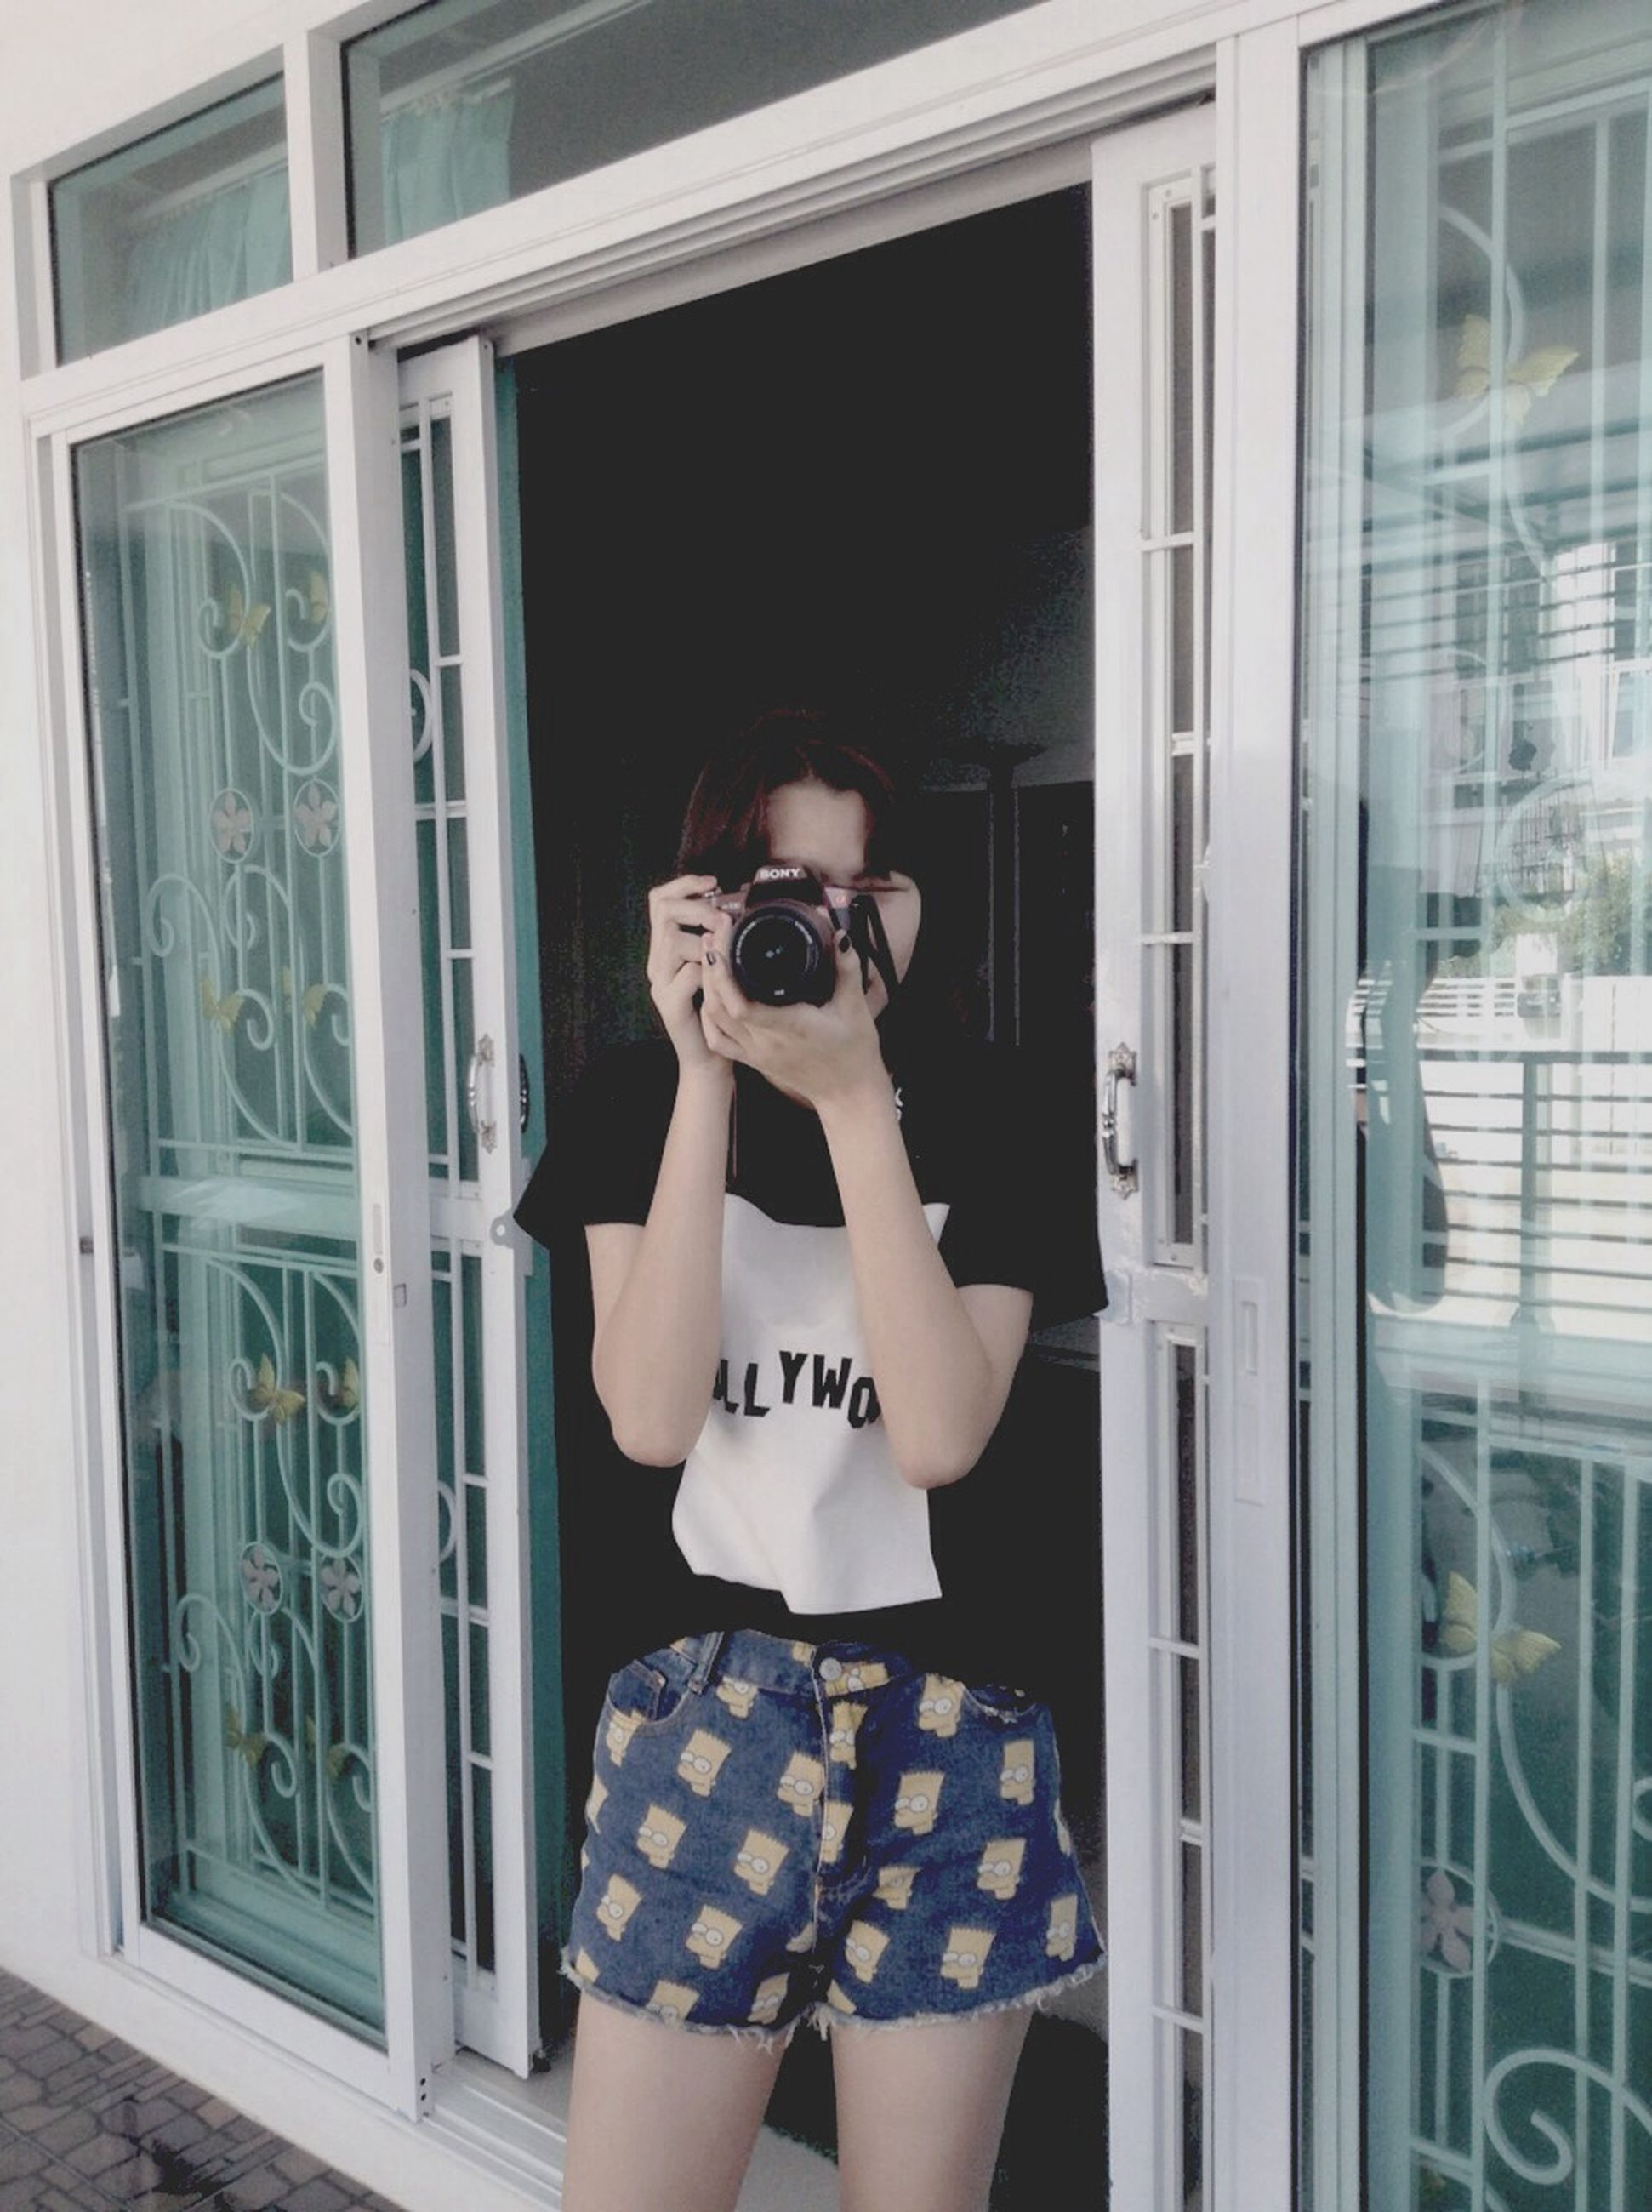 lifestyles, young adult, leisure activity, architecture, built structure, front view, holding, building exterior, young women, person, standing, photography themes, window, looking at camera, sunglasses, photographing, reflection, casual clothing